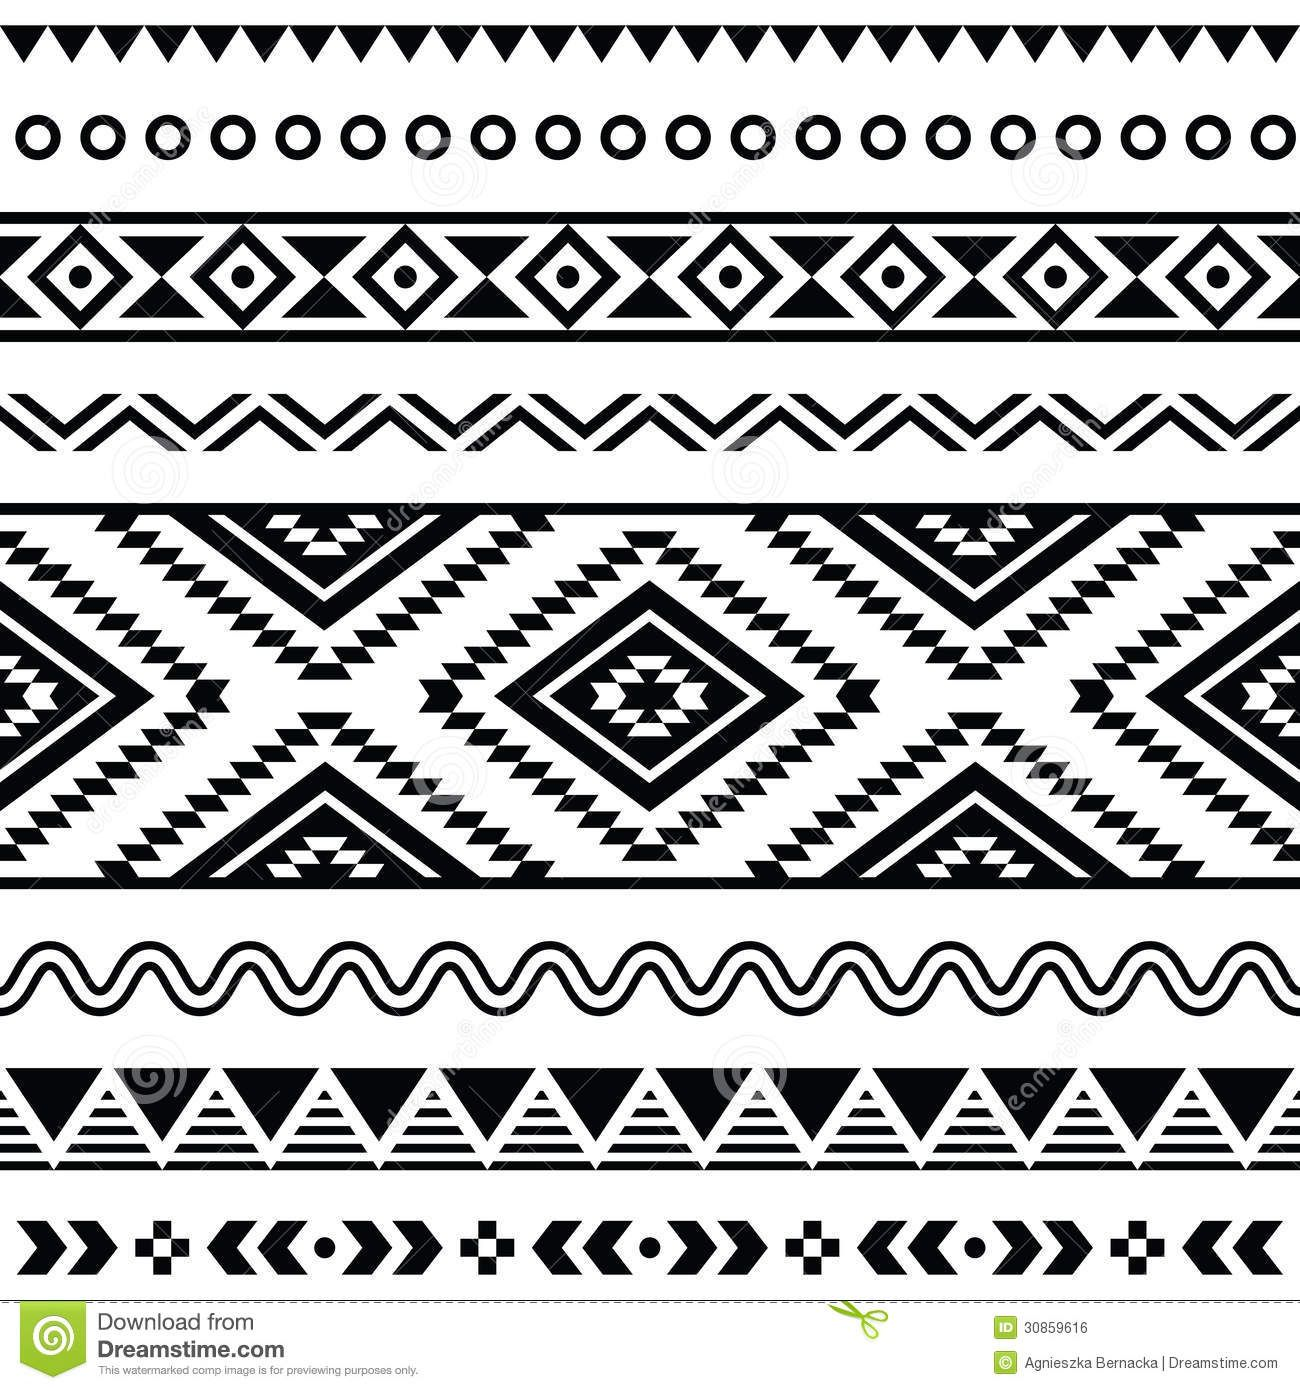 05b21fc8 free+southwest+clip+art+designs | More similar stock images of ` Tribal  seamless pattern, aztec black .